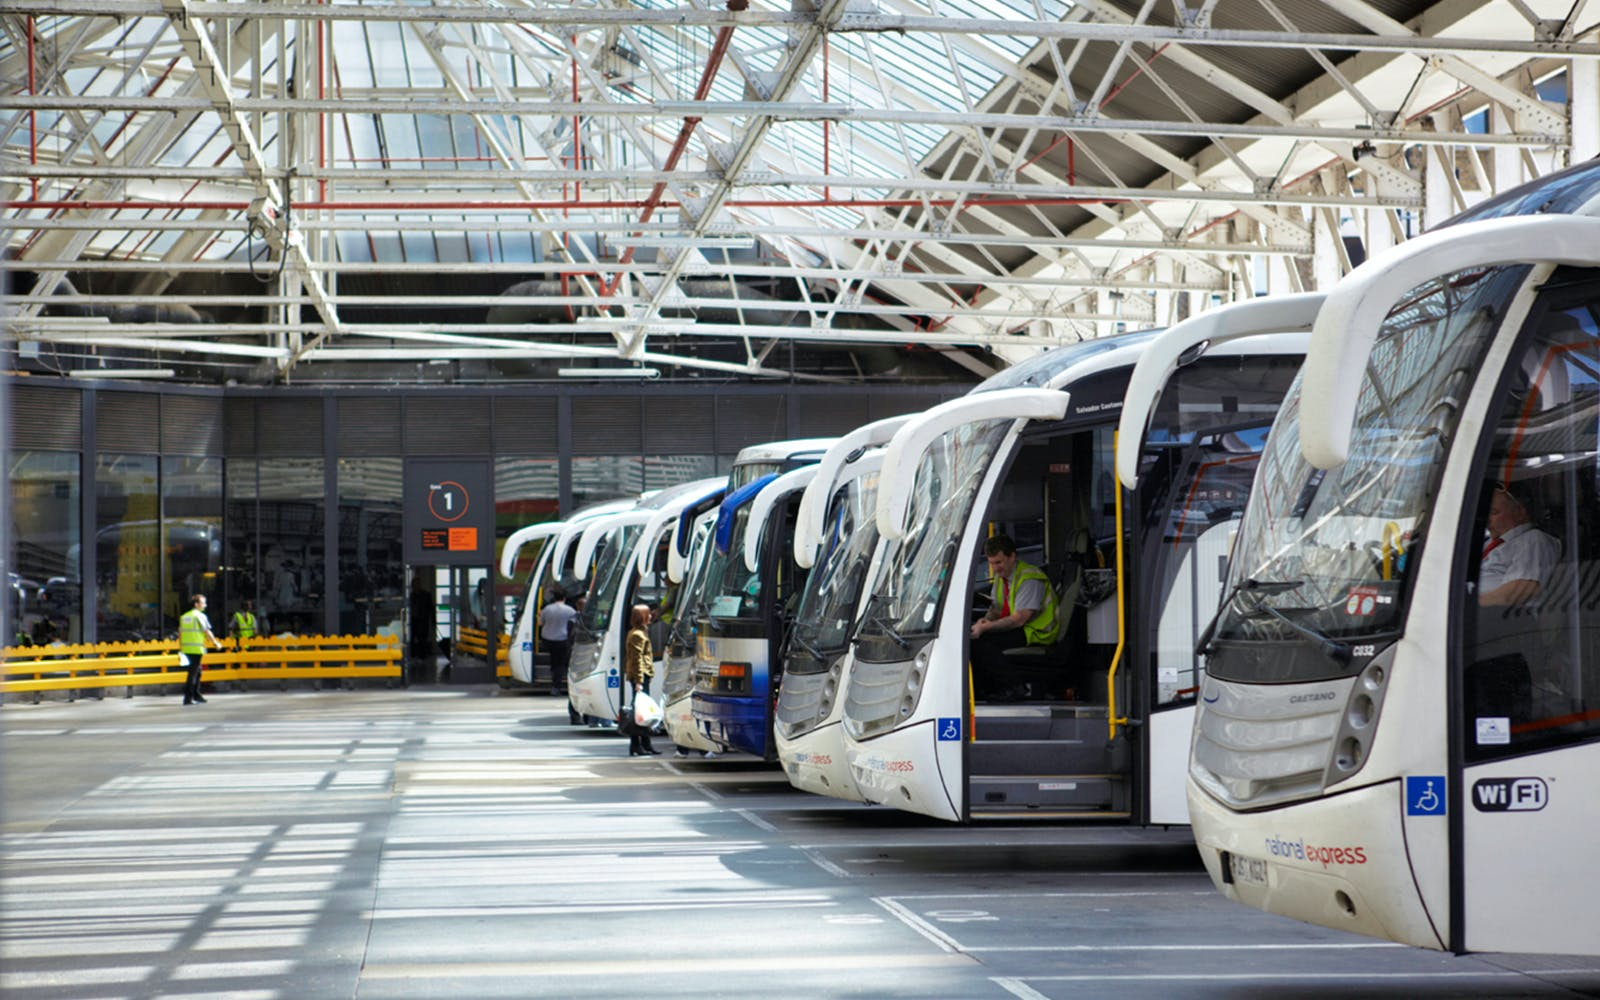 stansted airport to liverpool station bus transfers-4